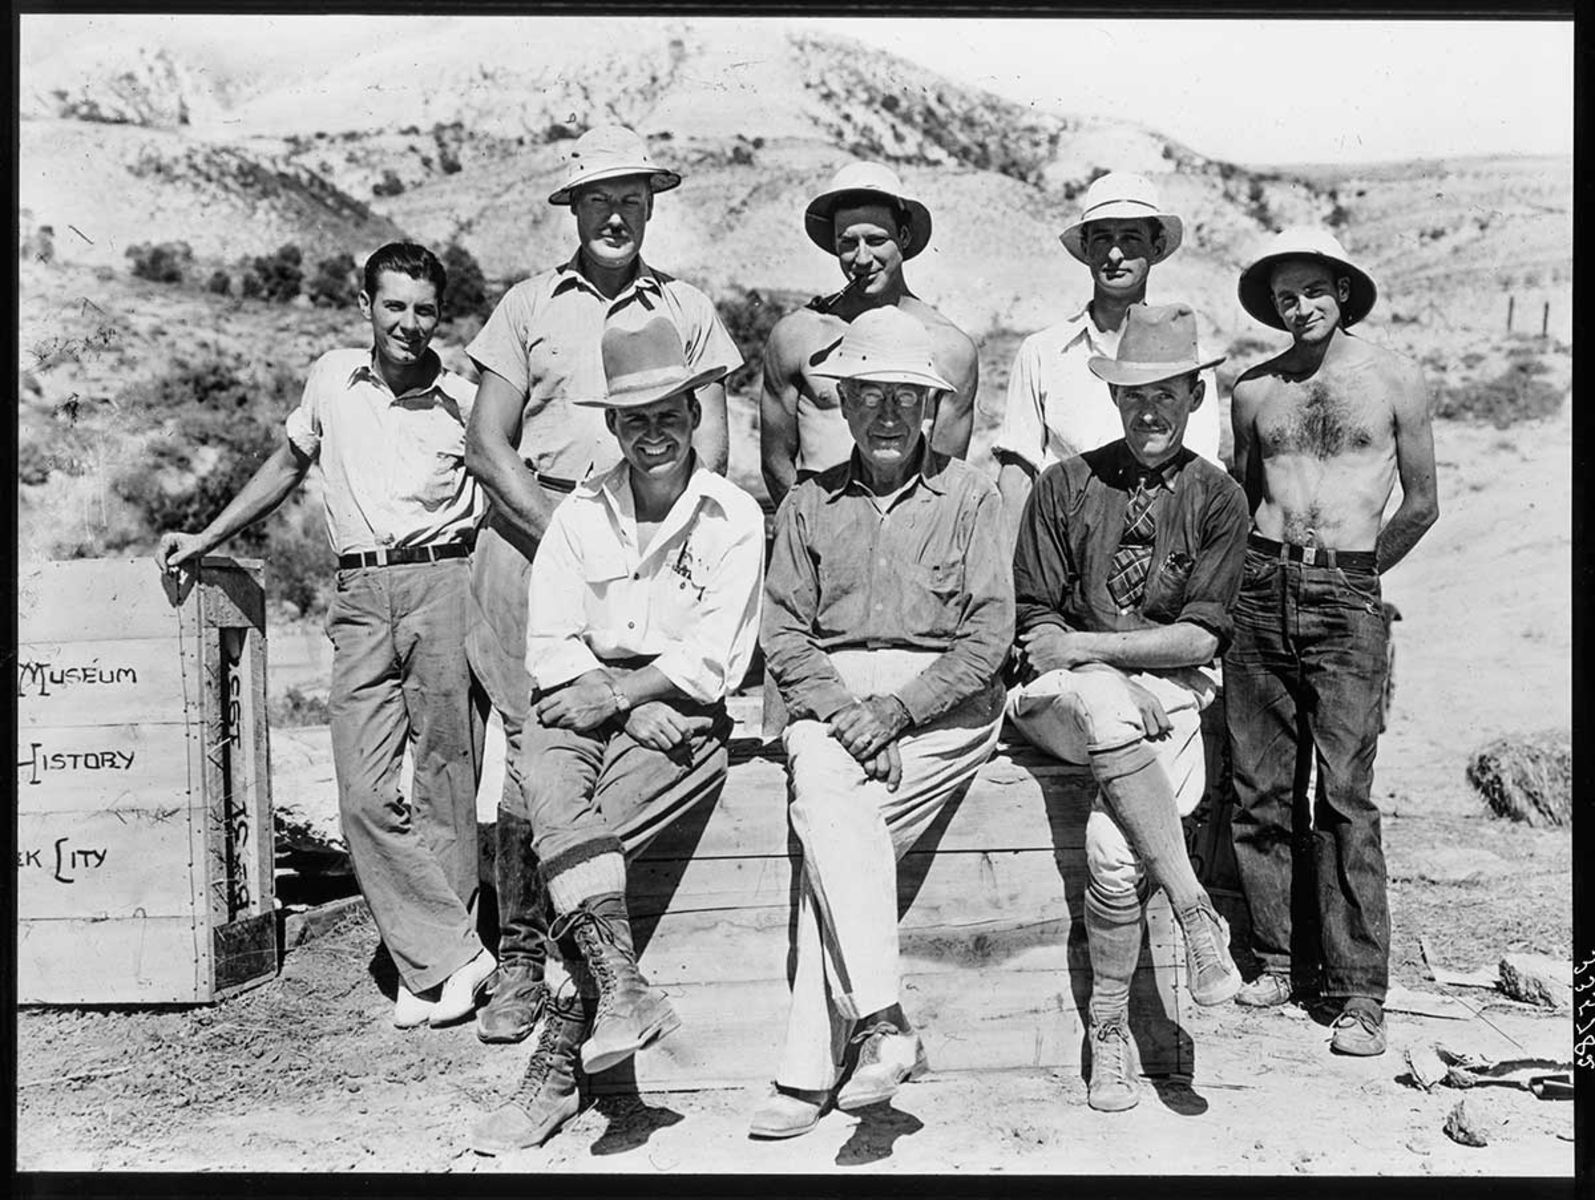 Barnum Brown and his field crew.